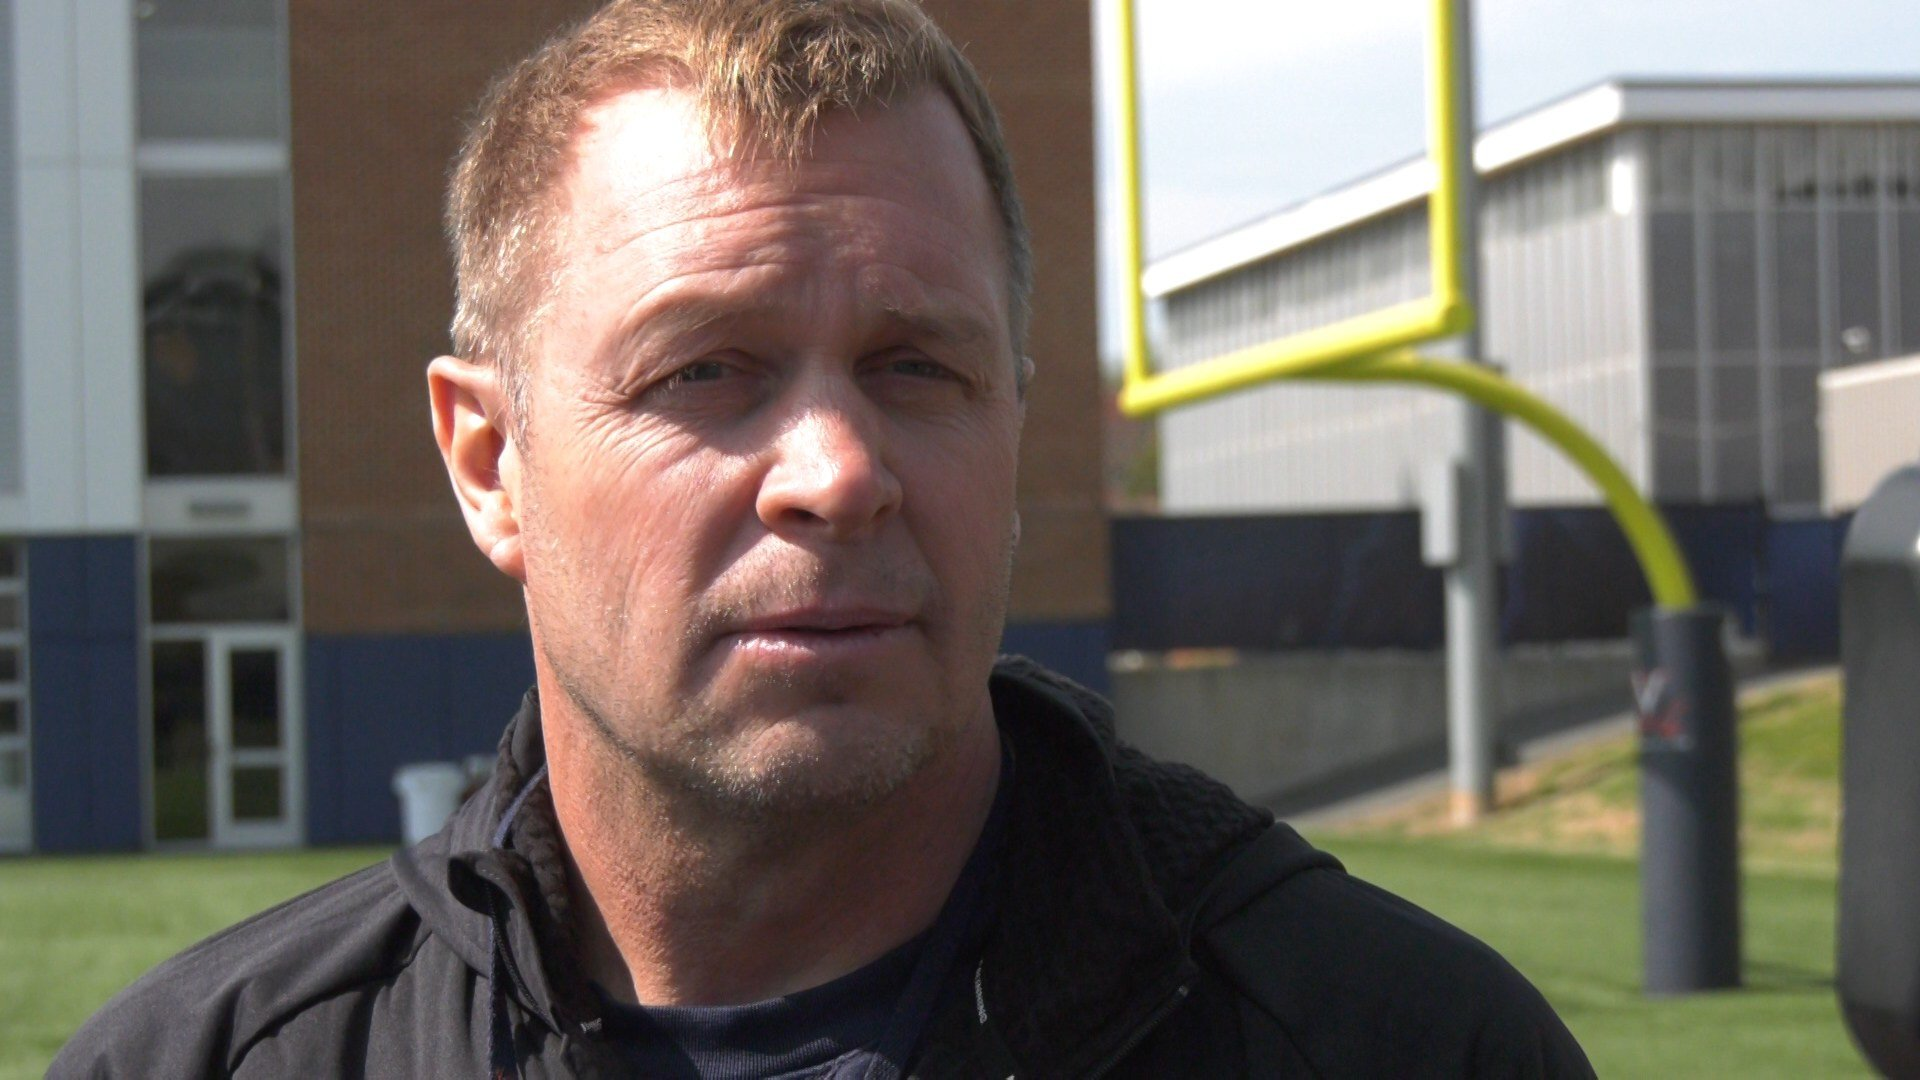 UVa head coach Bronco Mendenhall